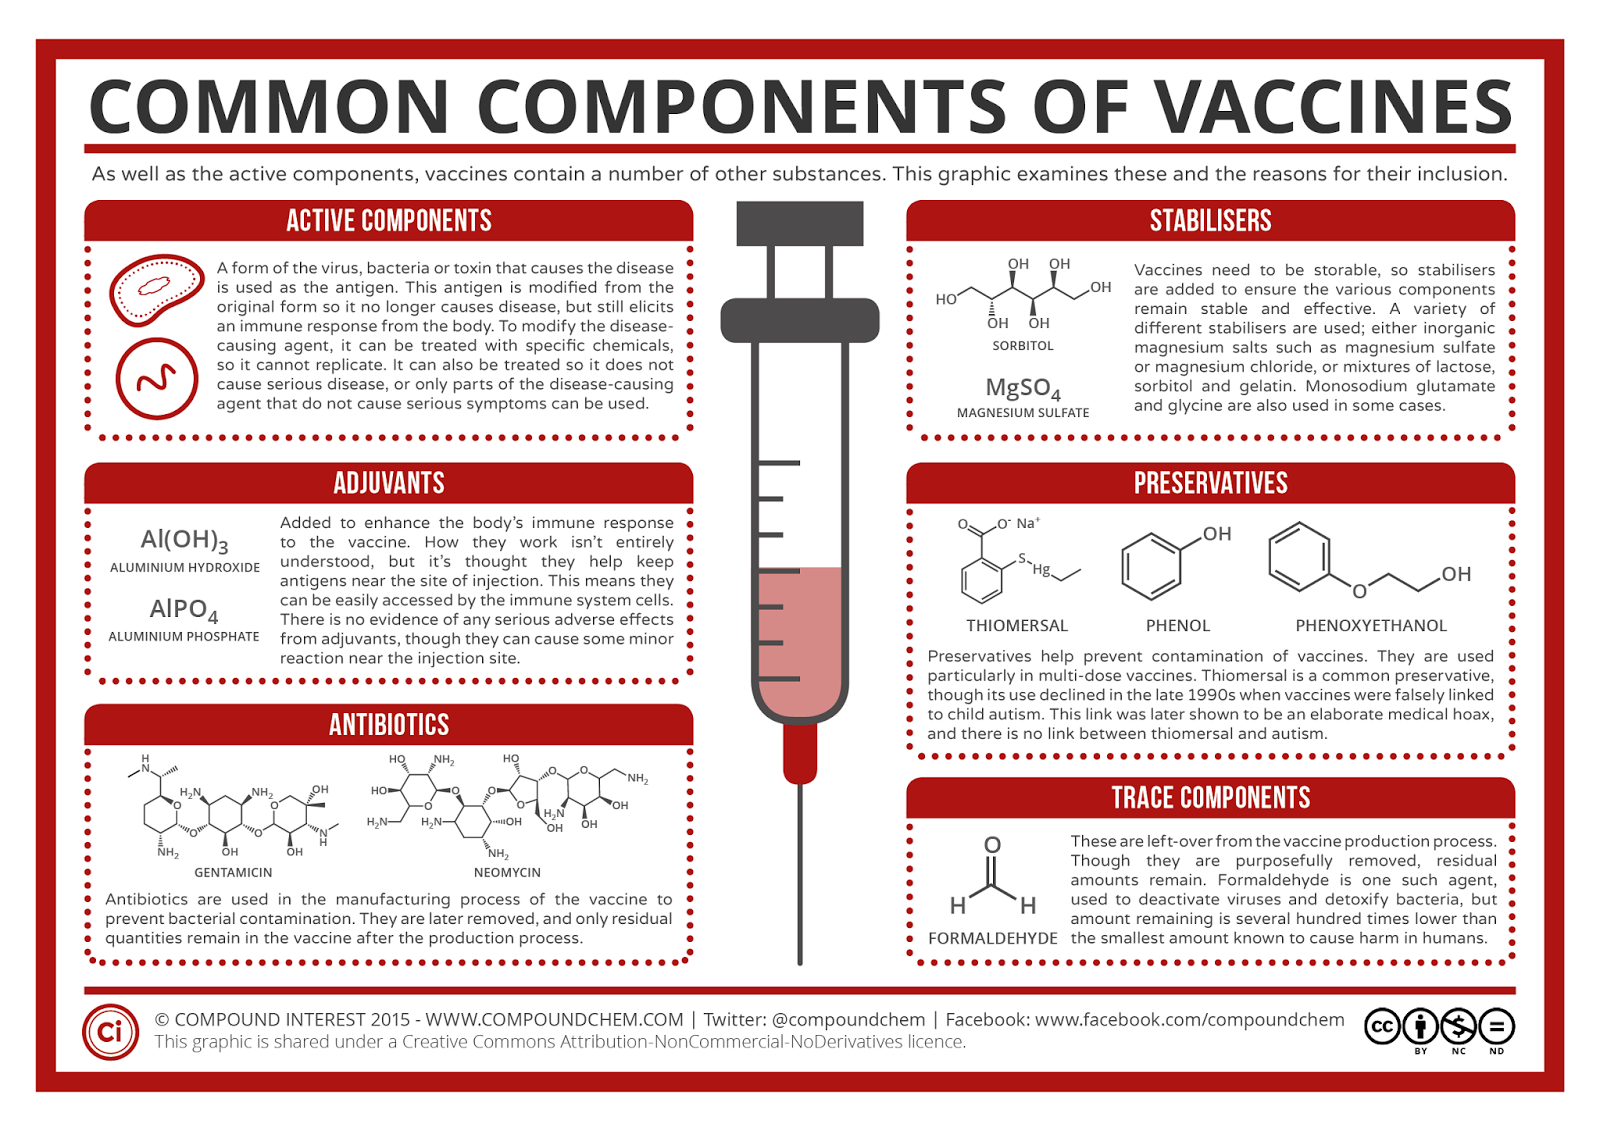 http://www.compoundchem.com/wp-content/uploads/2015/02/Medicinal-Chemistry-Common-Components-of-Vaccines-Summary.png